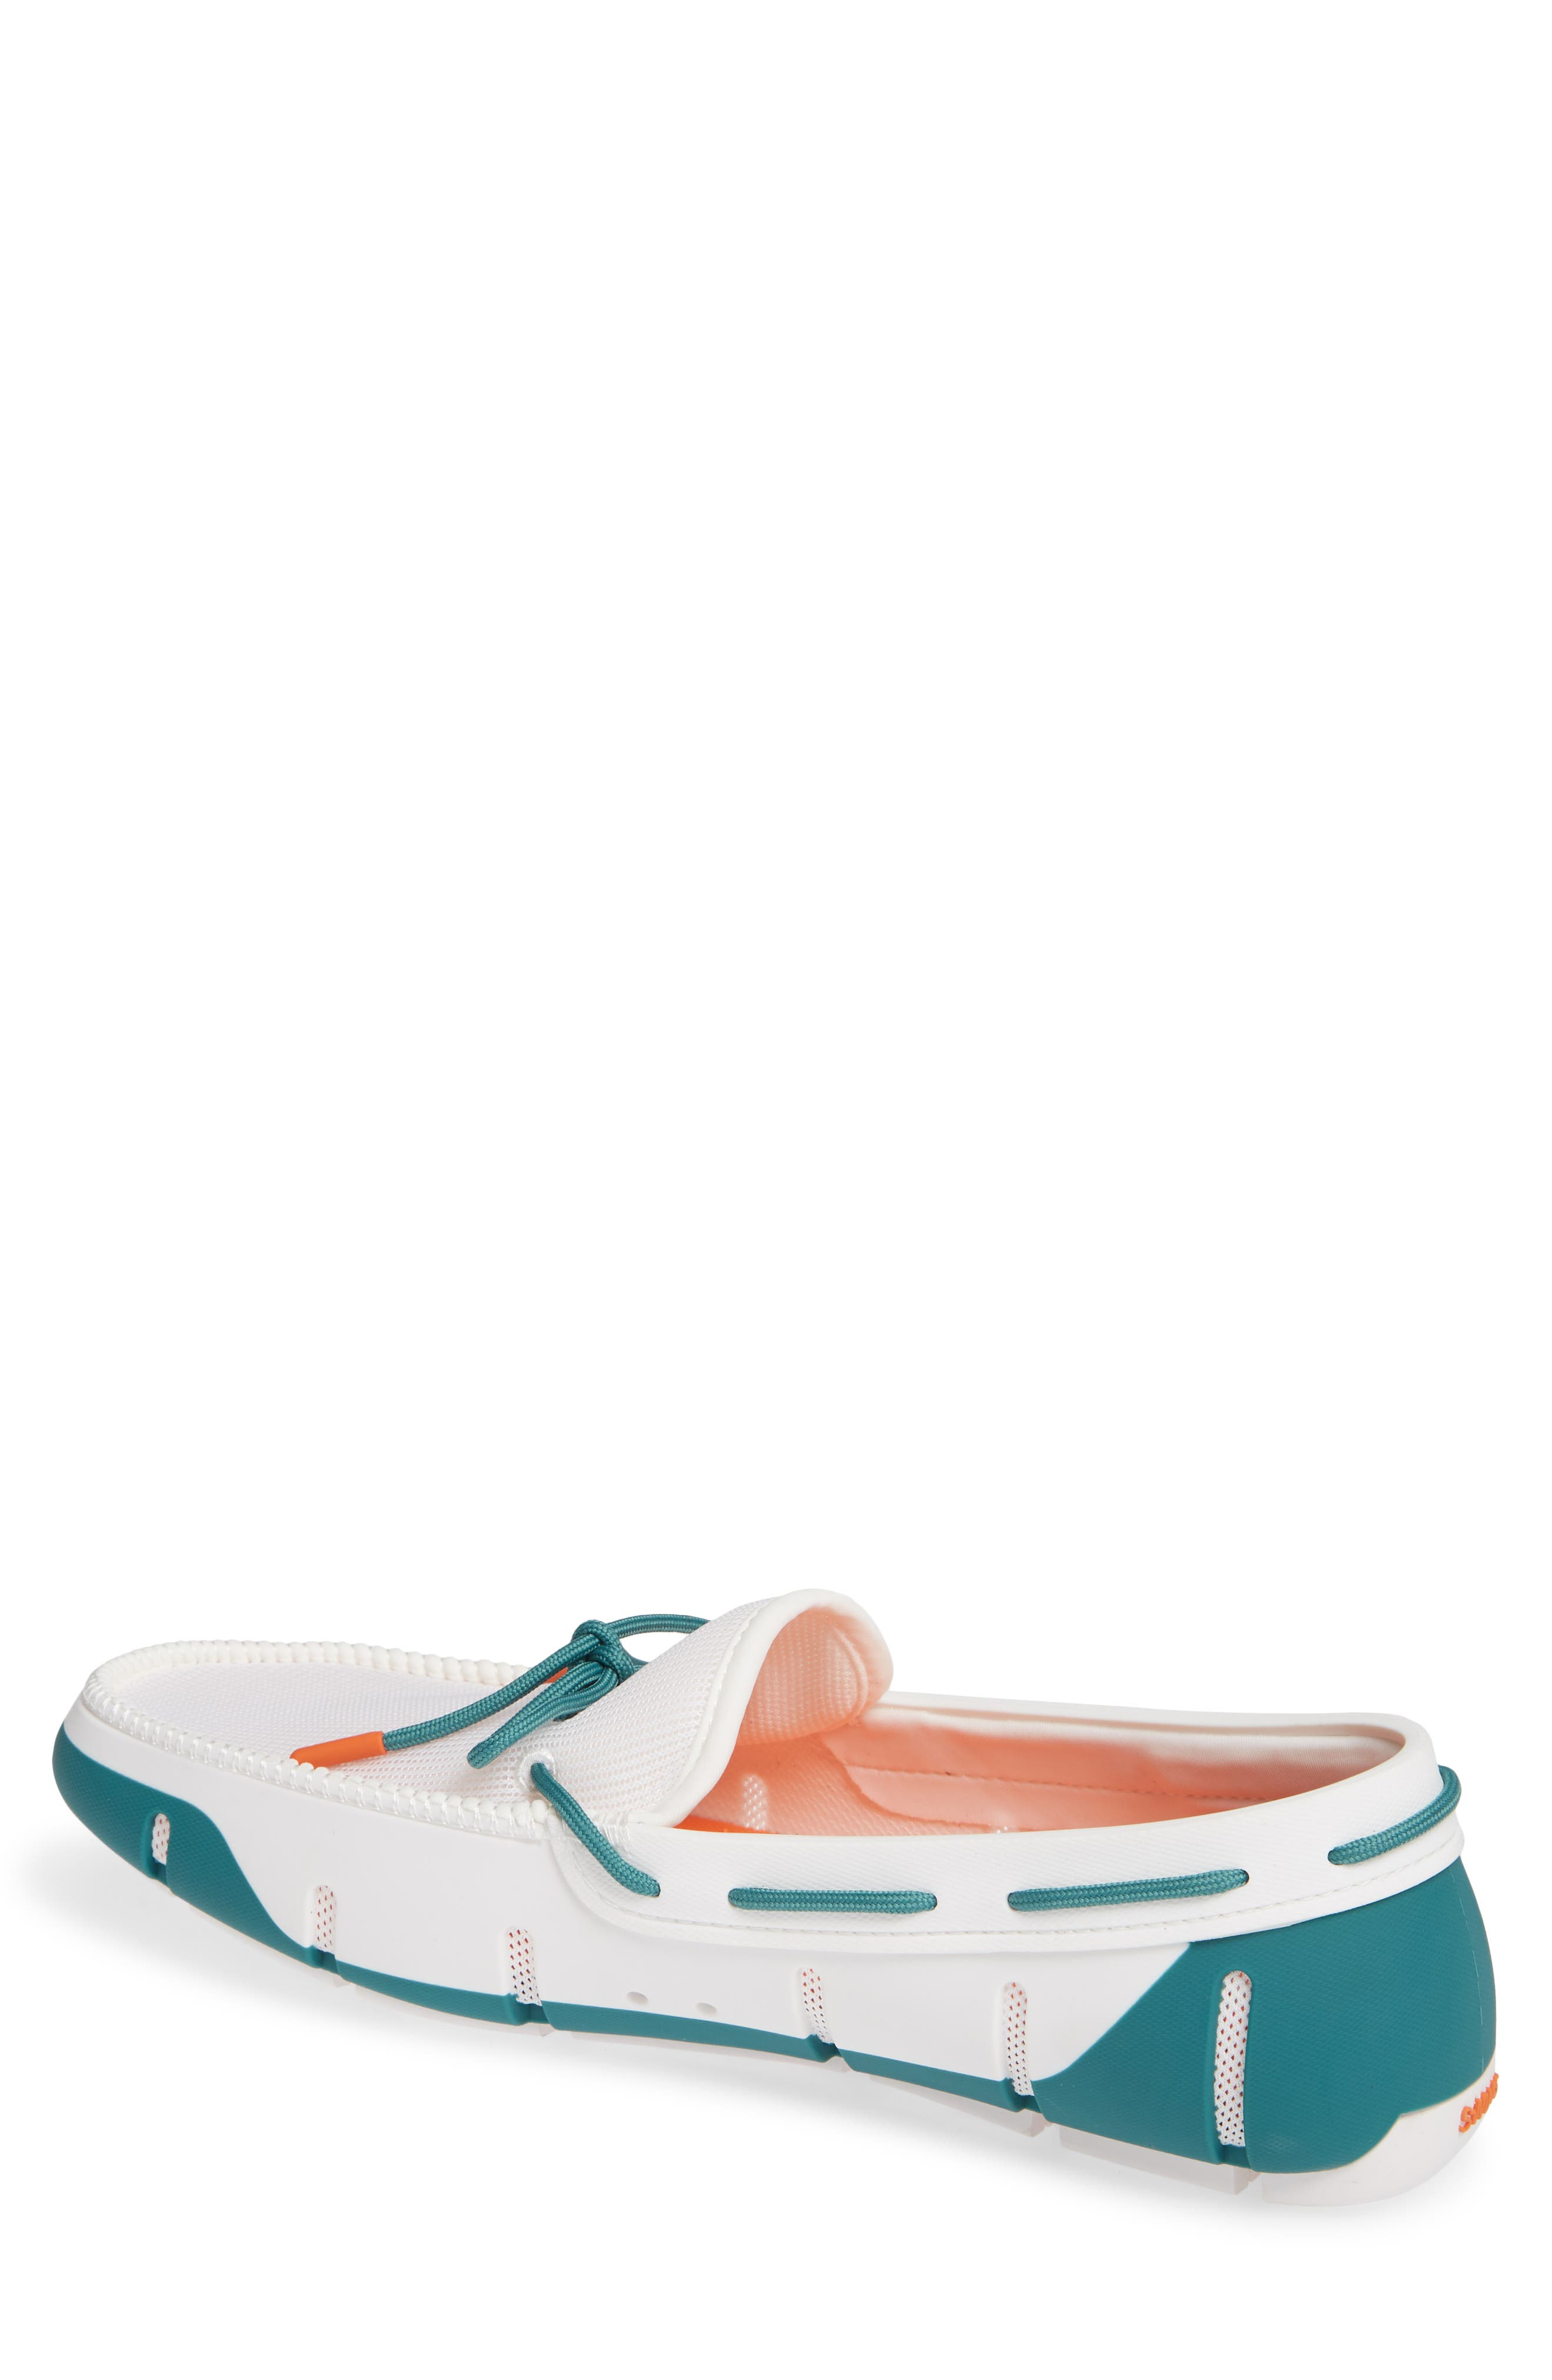 Stride Lace Loafer,                             Alternate thumbnail 2, color,                             WHITE/ TEAL